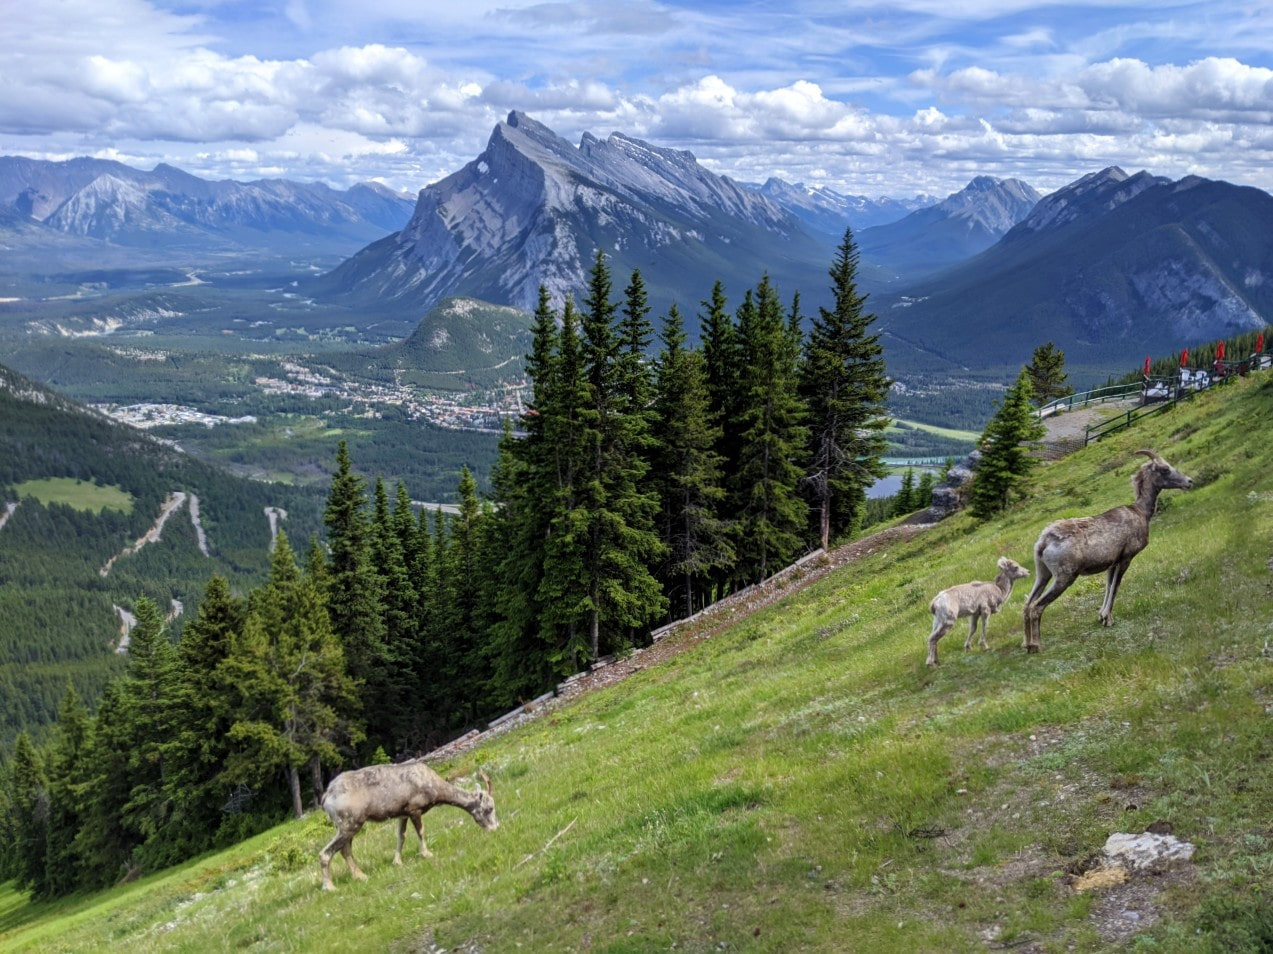 Top of chairlift views with bighorn sheep on grass, in front of mountains